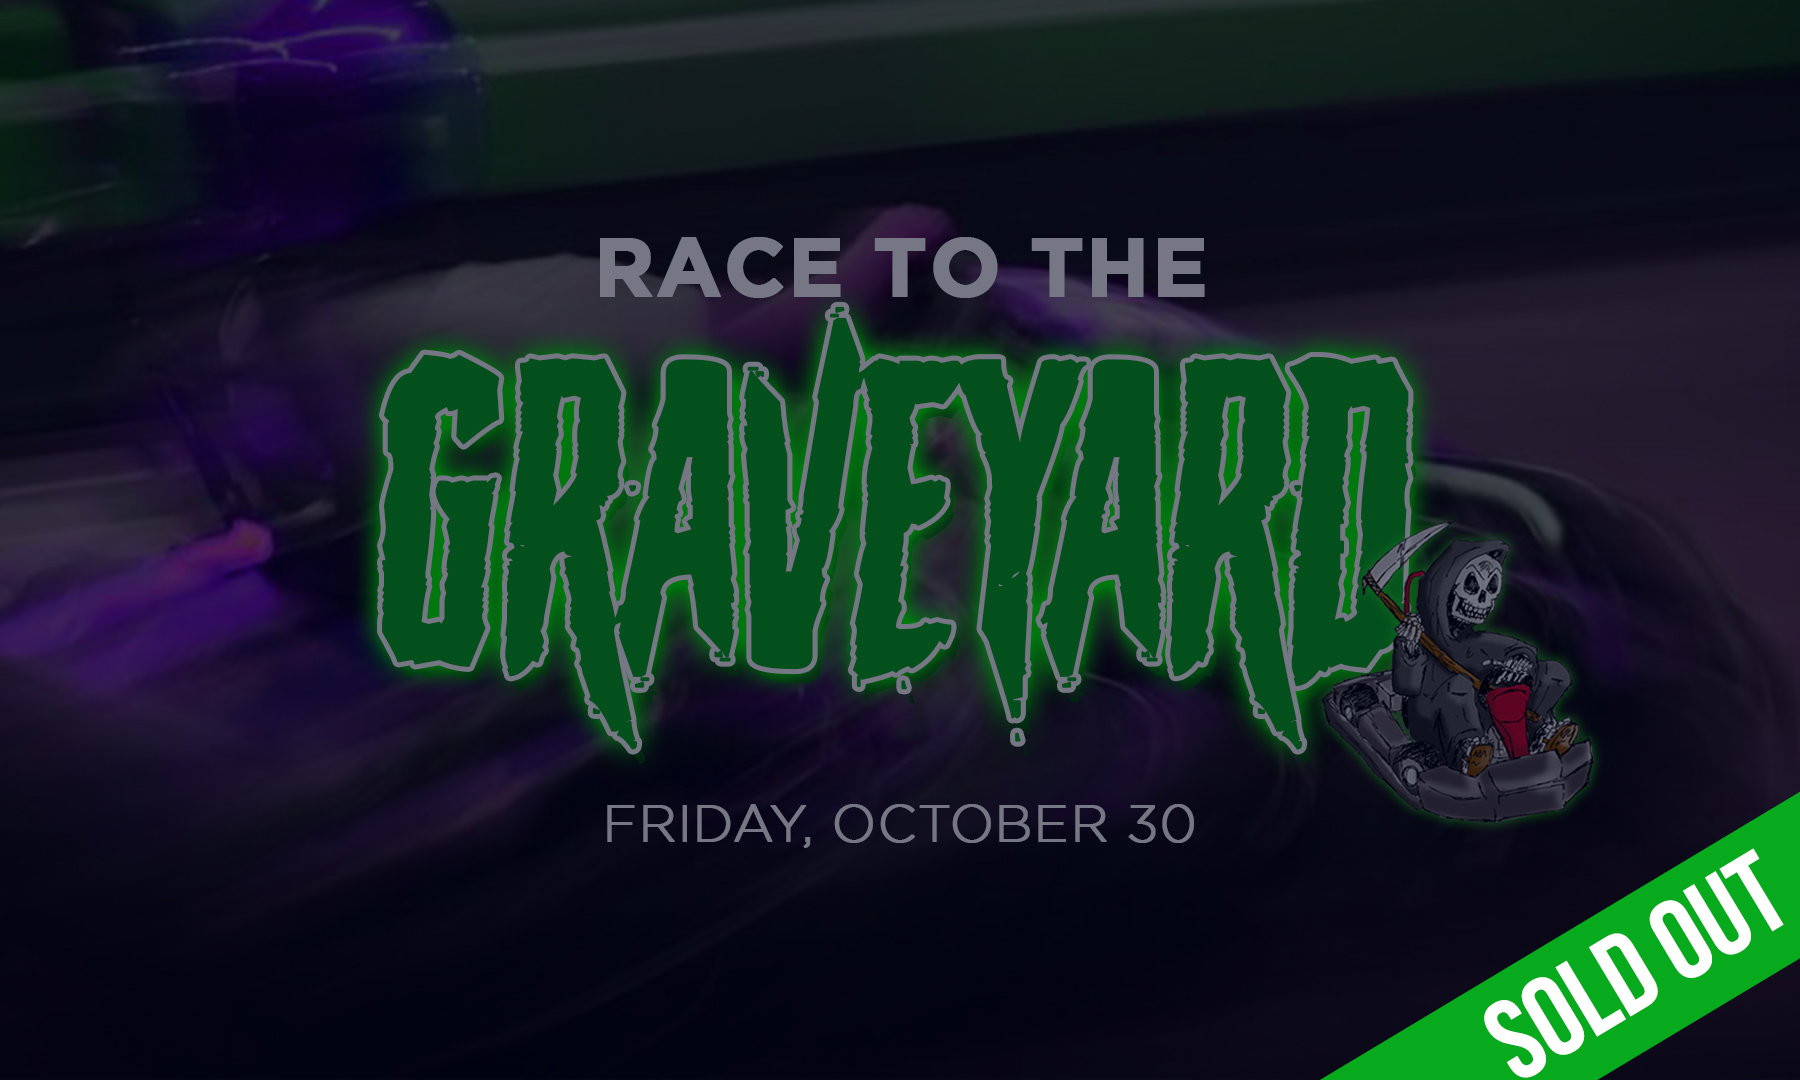 Race to the Graveyard 2020